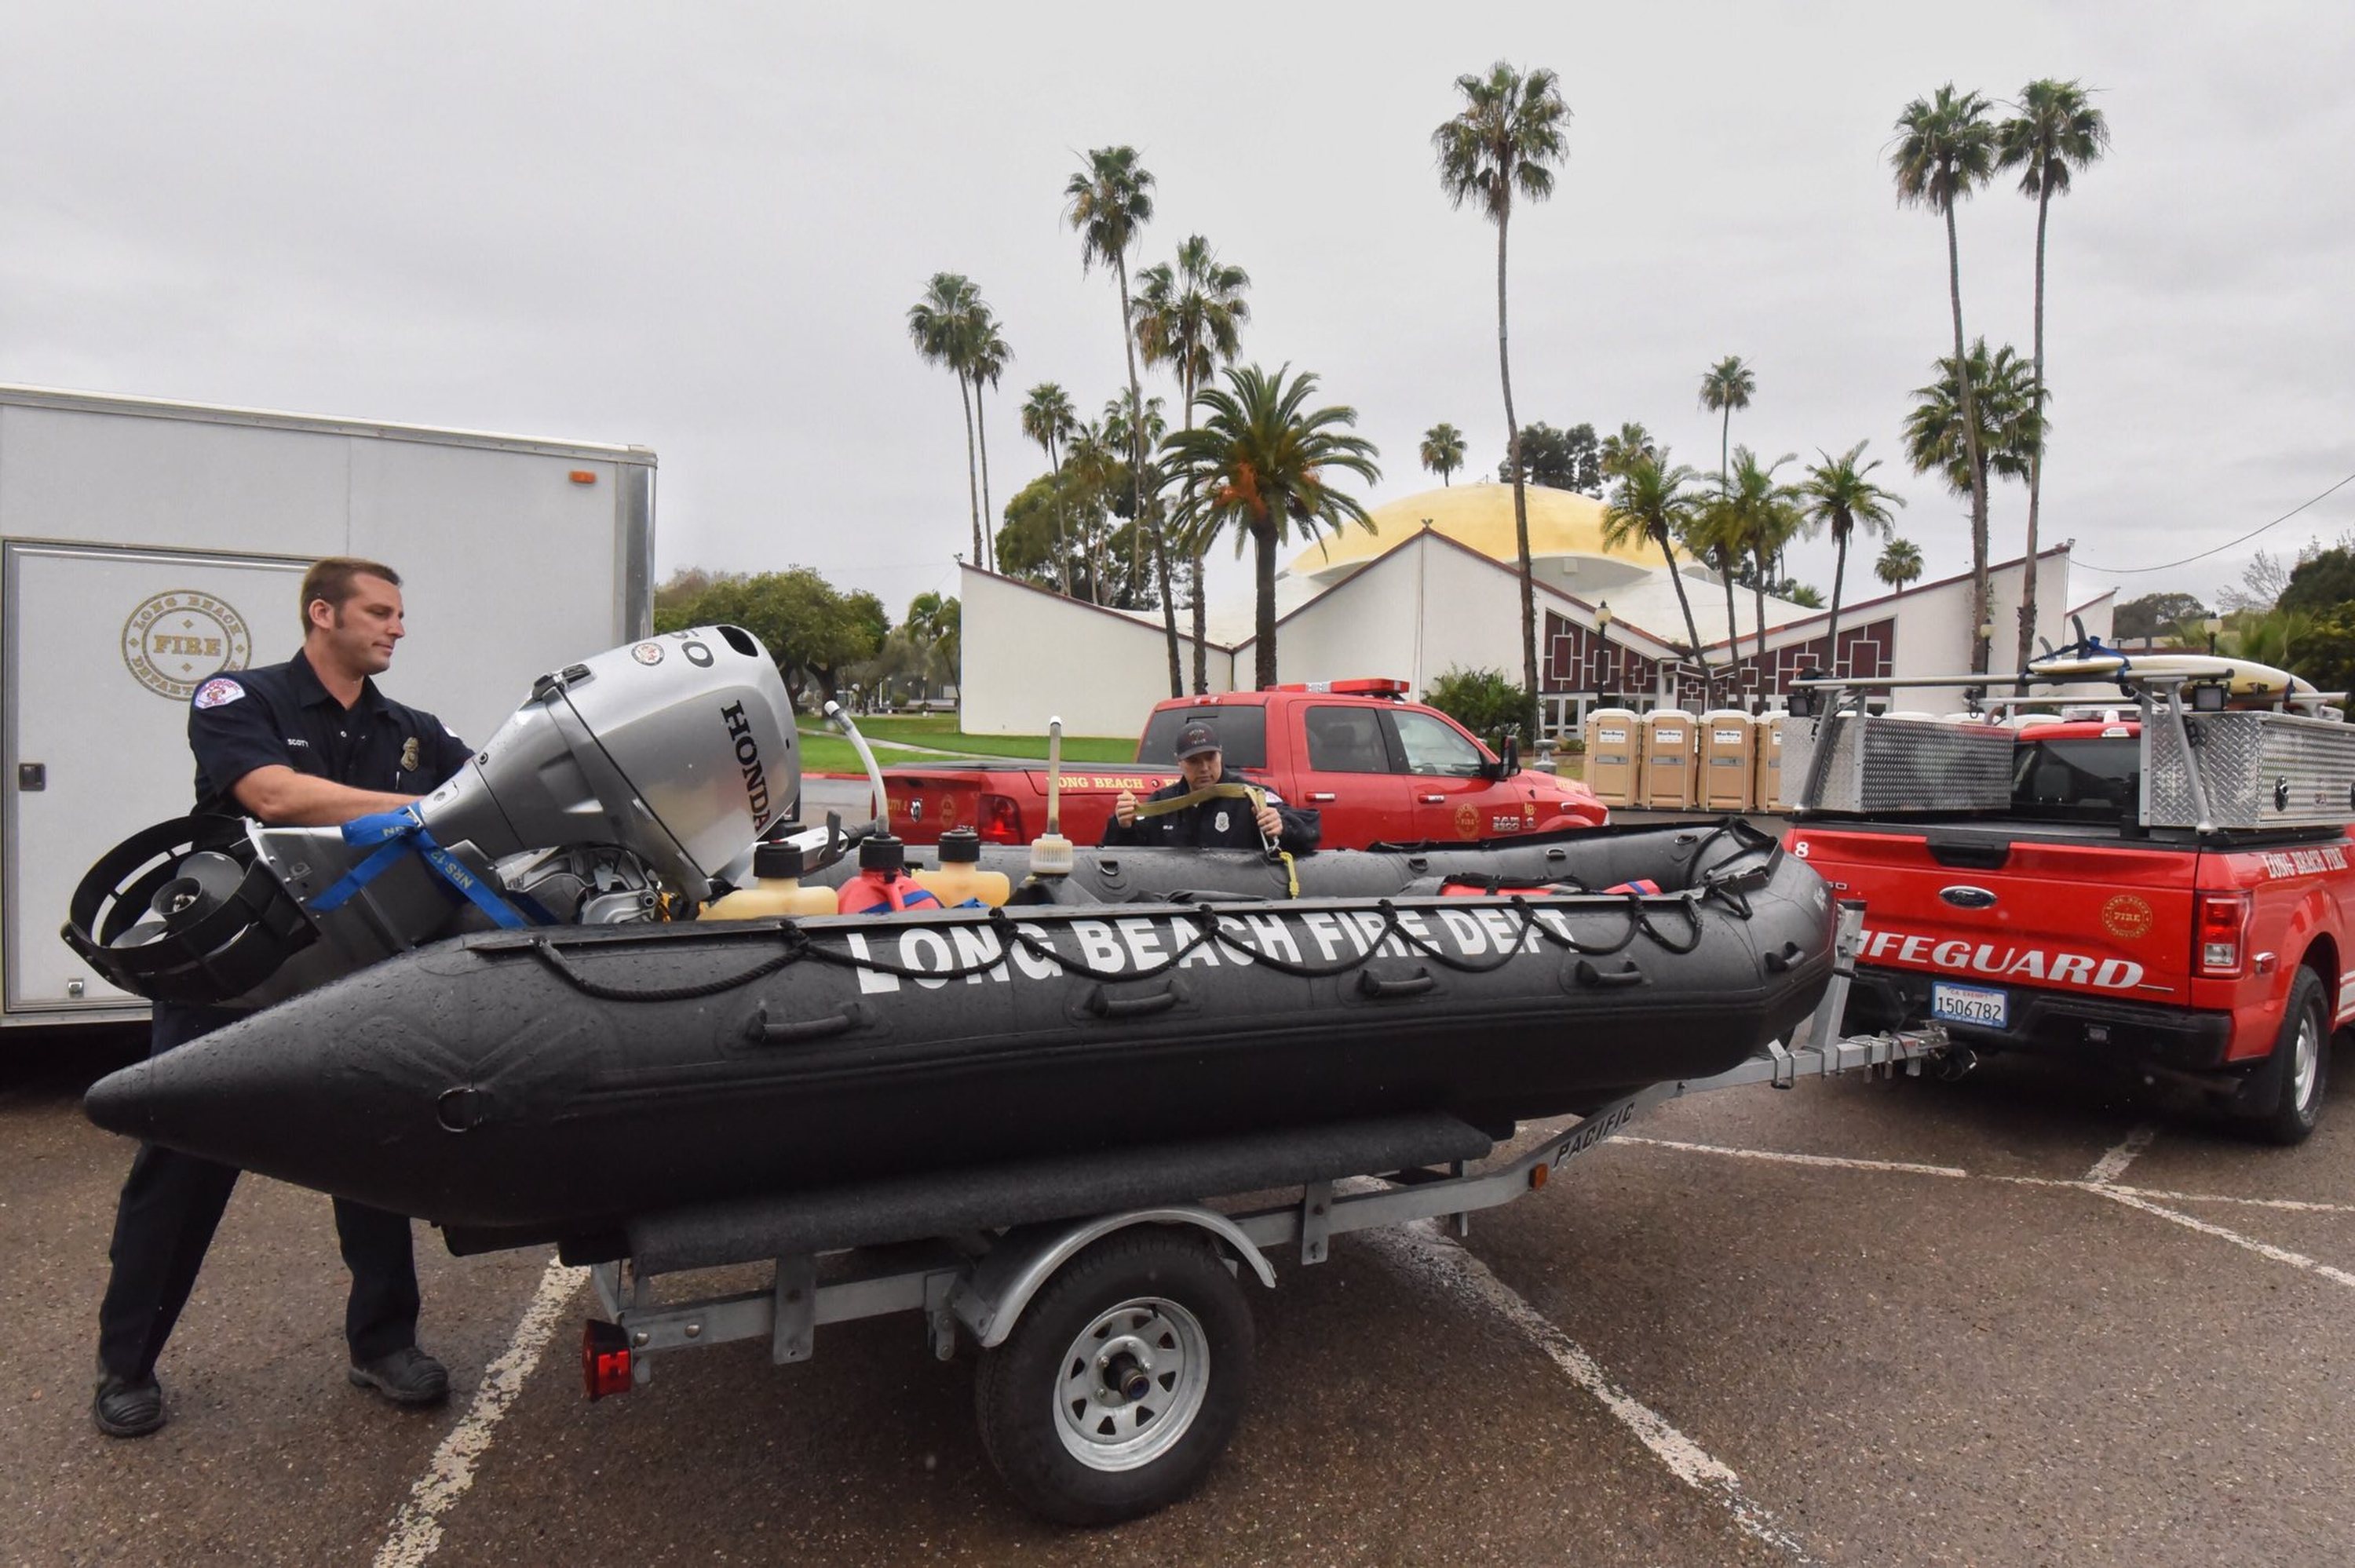 In this photo released by Santa Barbara County Fire Department, members of the Long Beach Fire Department Swift Water Rescue Team check equipment while staged at Earl Warren Showgrounds in Santa Barbara, Calif., Monday, Jan. 8, 2018. The team will respond if needed for any area flooding in the Montecito or Carpinteria areas. (Mike Eliason/Santa Barbara County Fire Department via AP)